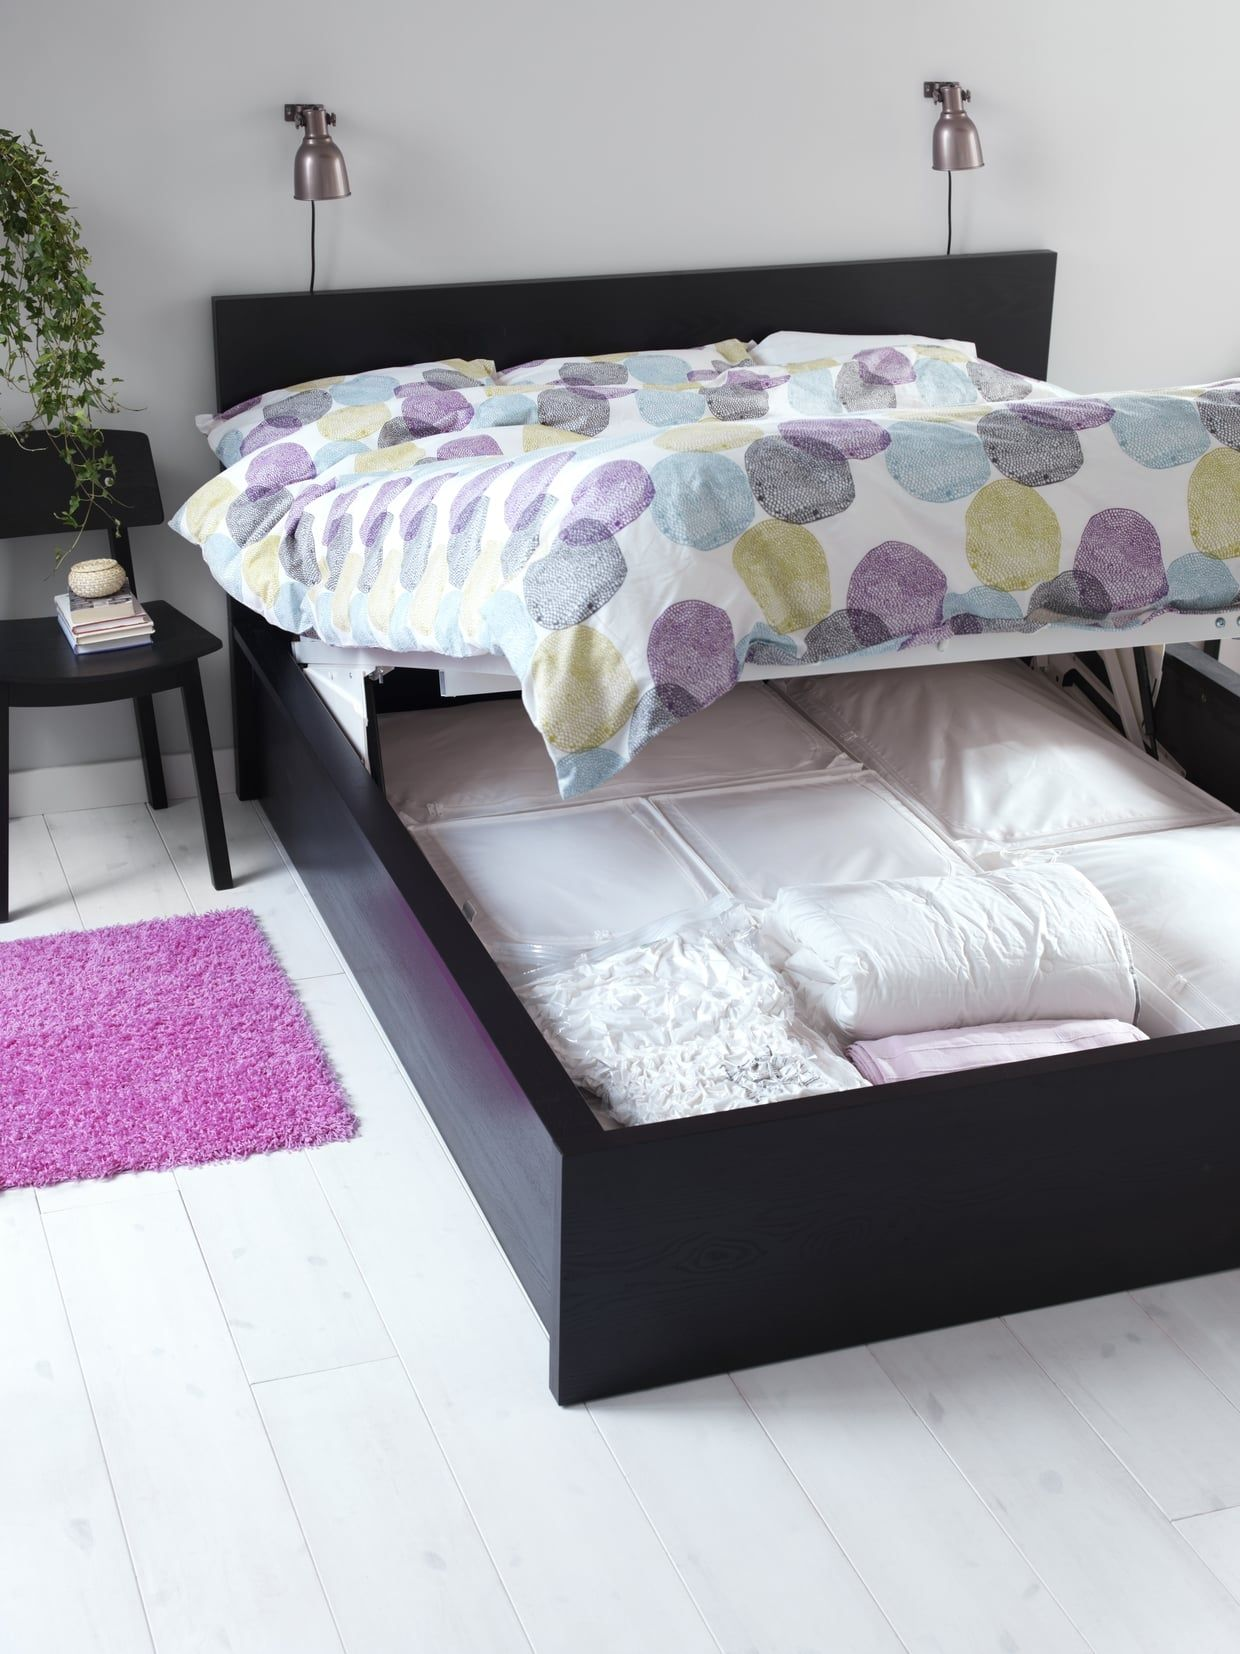 The Malm Storage Bed Gives You Extra E For Clothes Shoes And Bedding Makes It Easy To Access Too All Have Do Is Lift Up